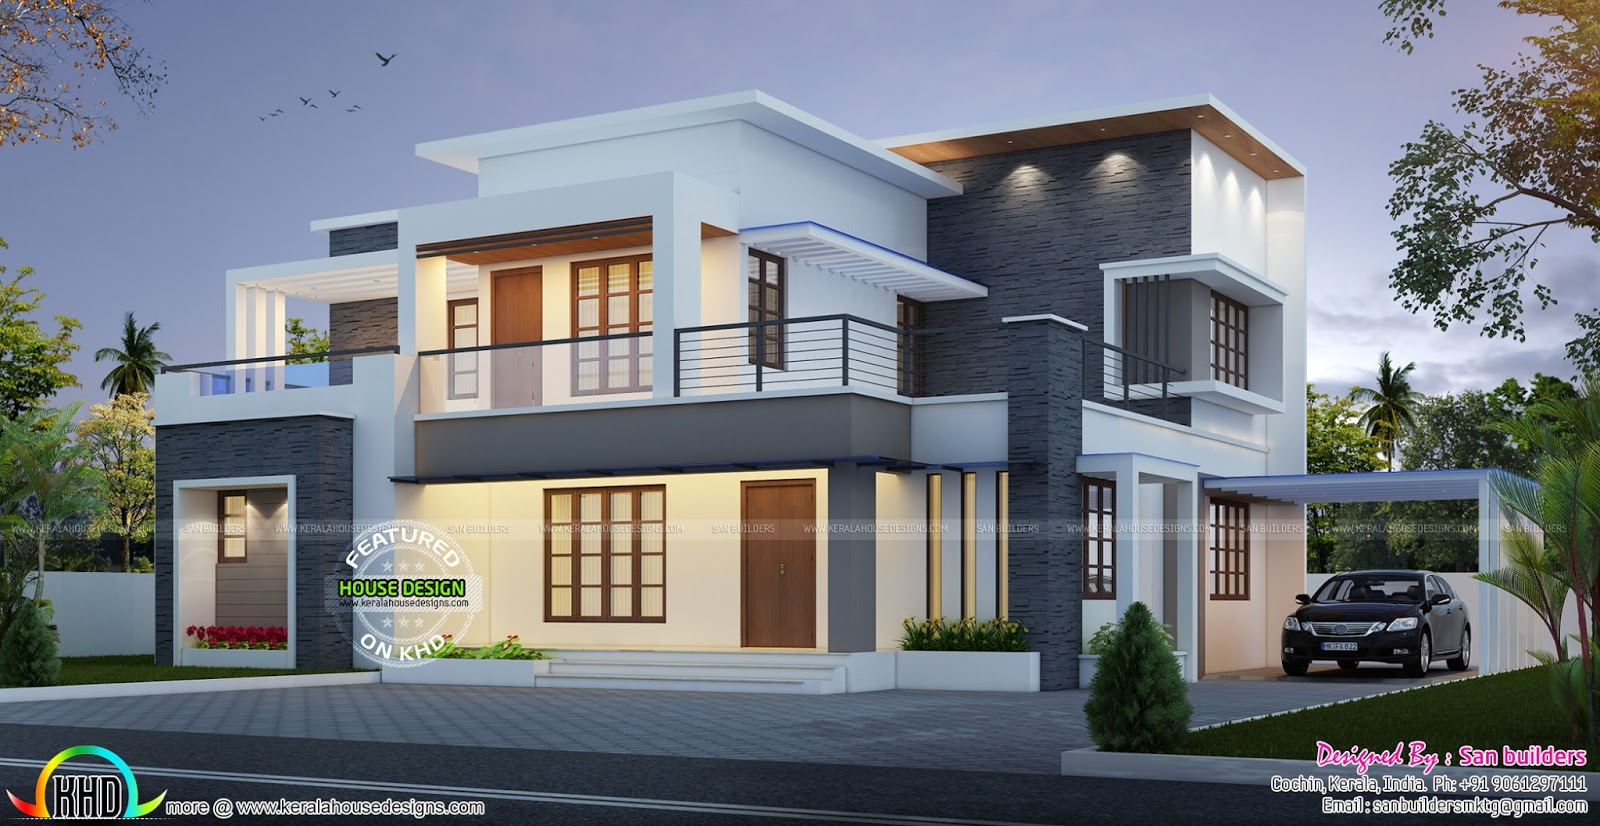 Elevation Of Ground Floor House : House plan and elevation by san builders kerala home